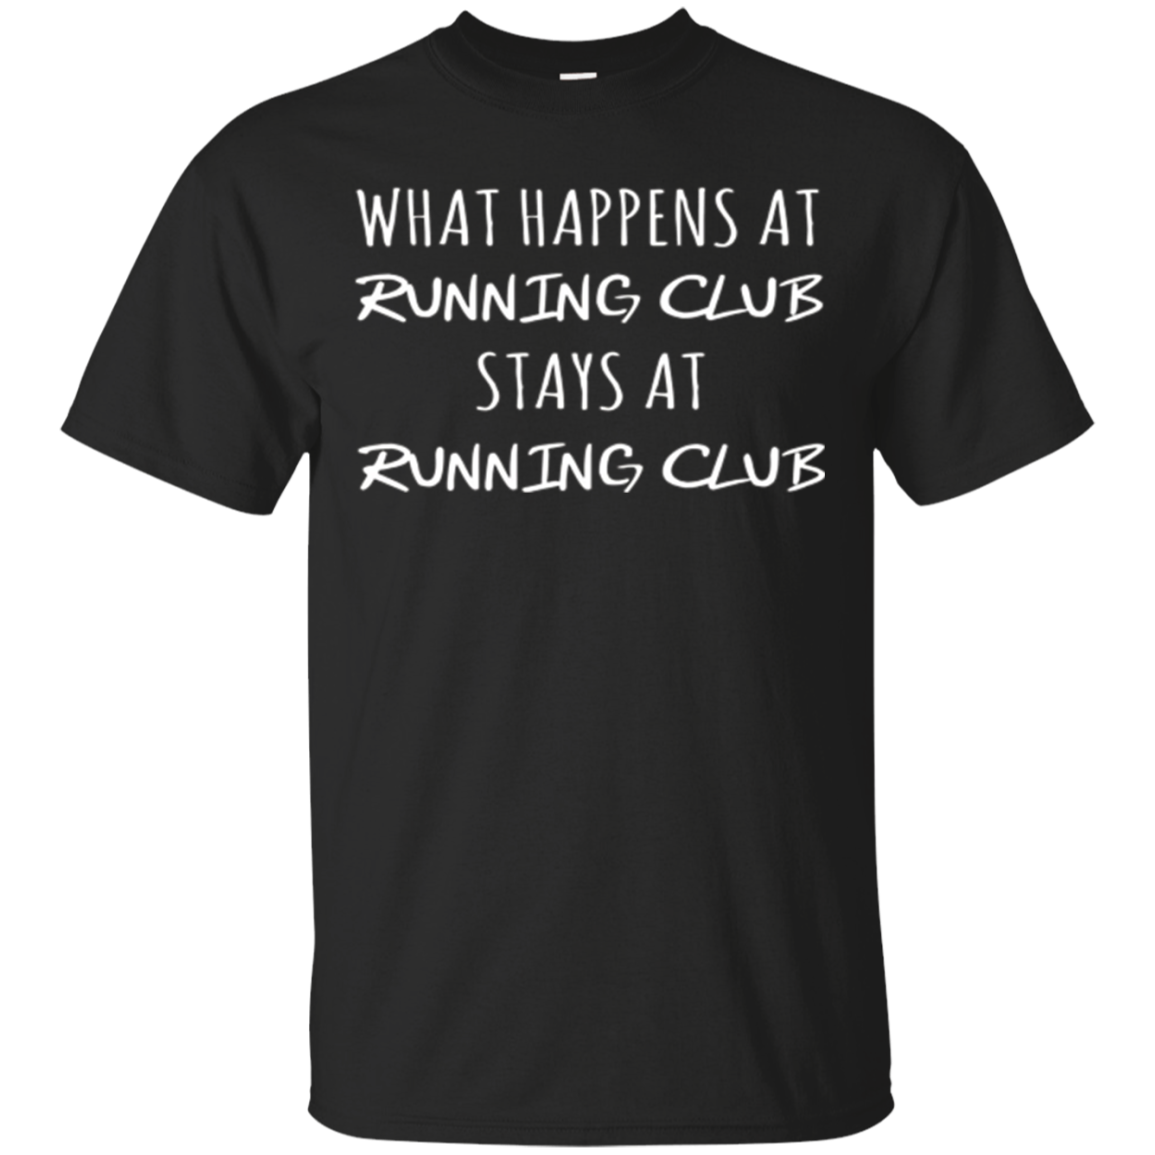 What Happens at Running Club Shirt Funny Runners Tee